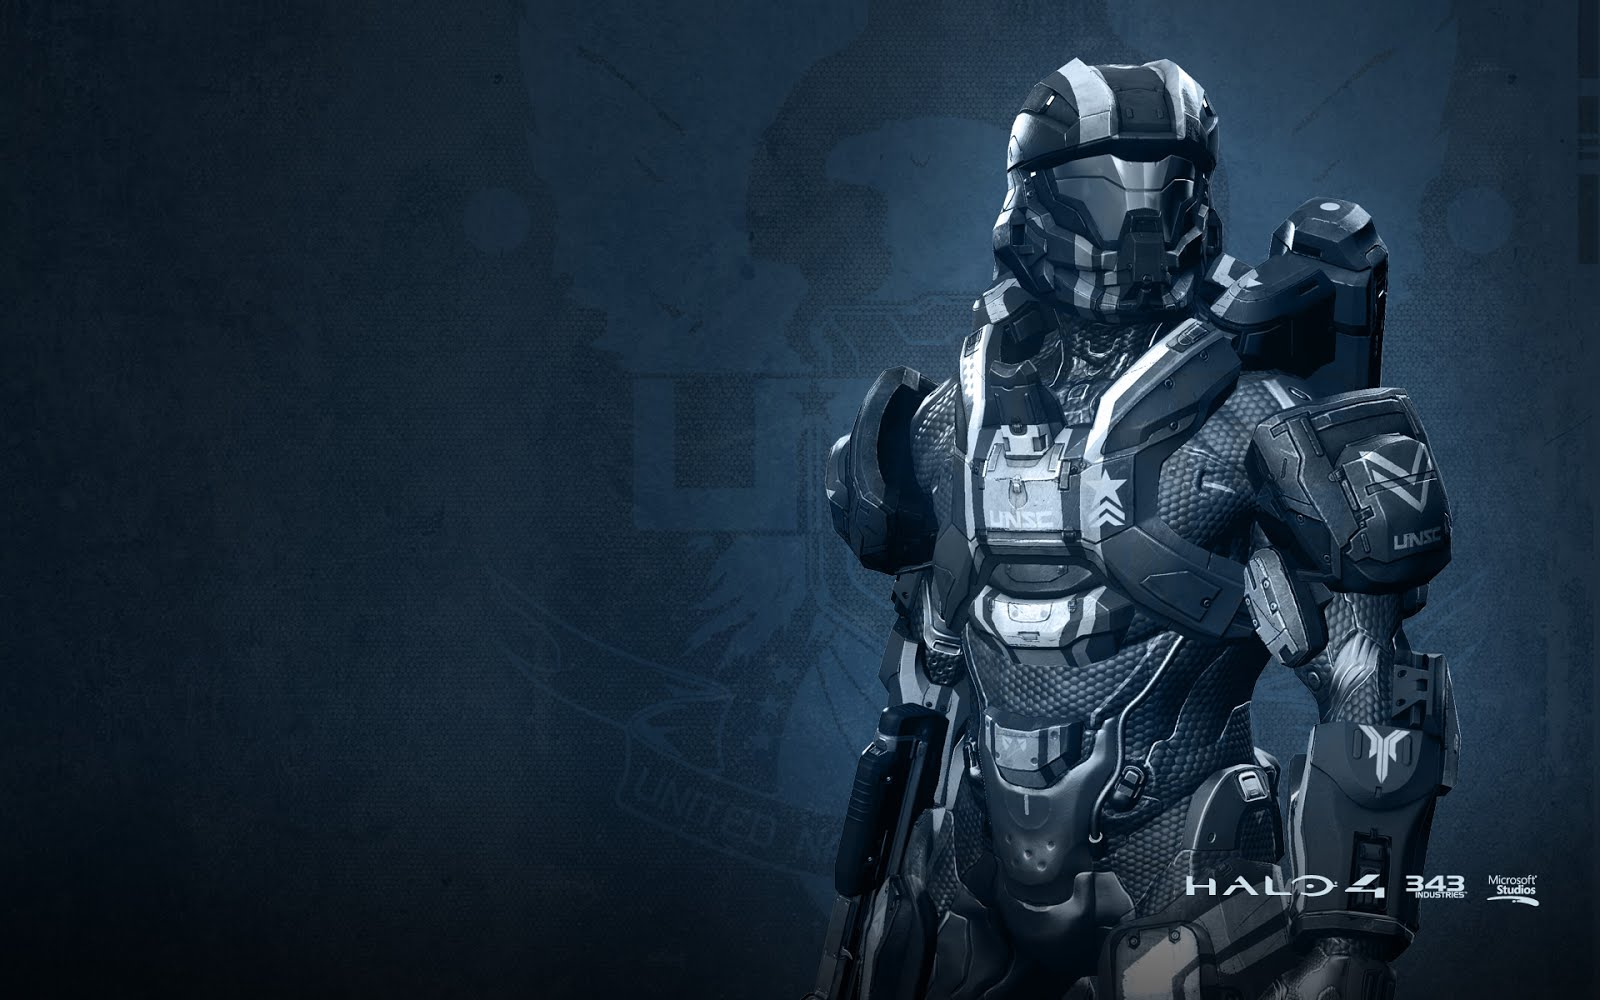 6 halo 4 high quality wallpapers 6 halo 4 high quality